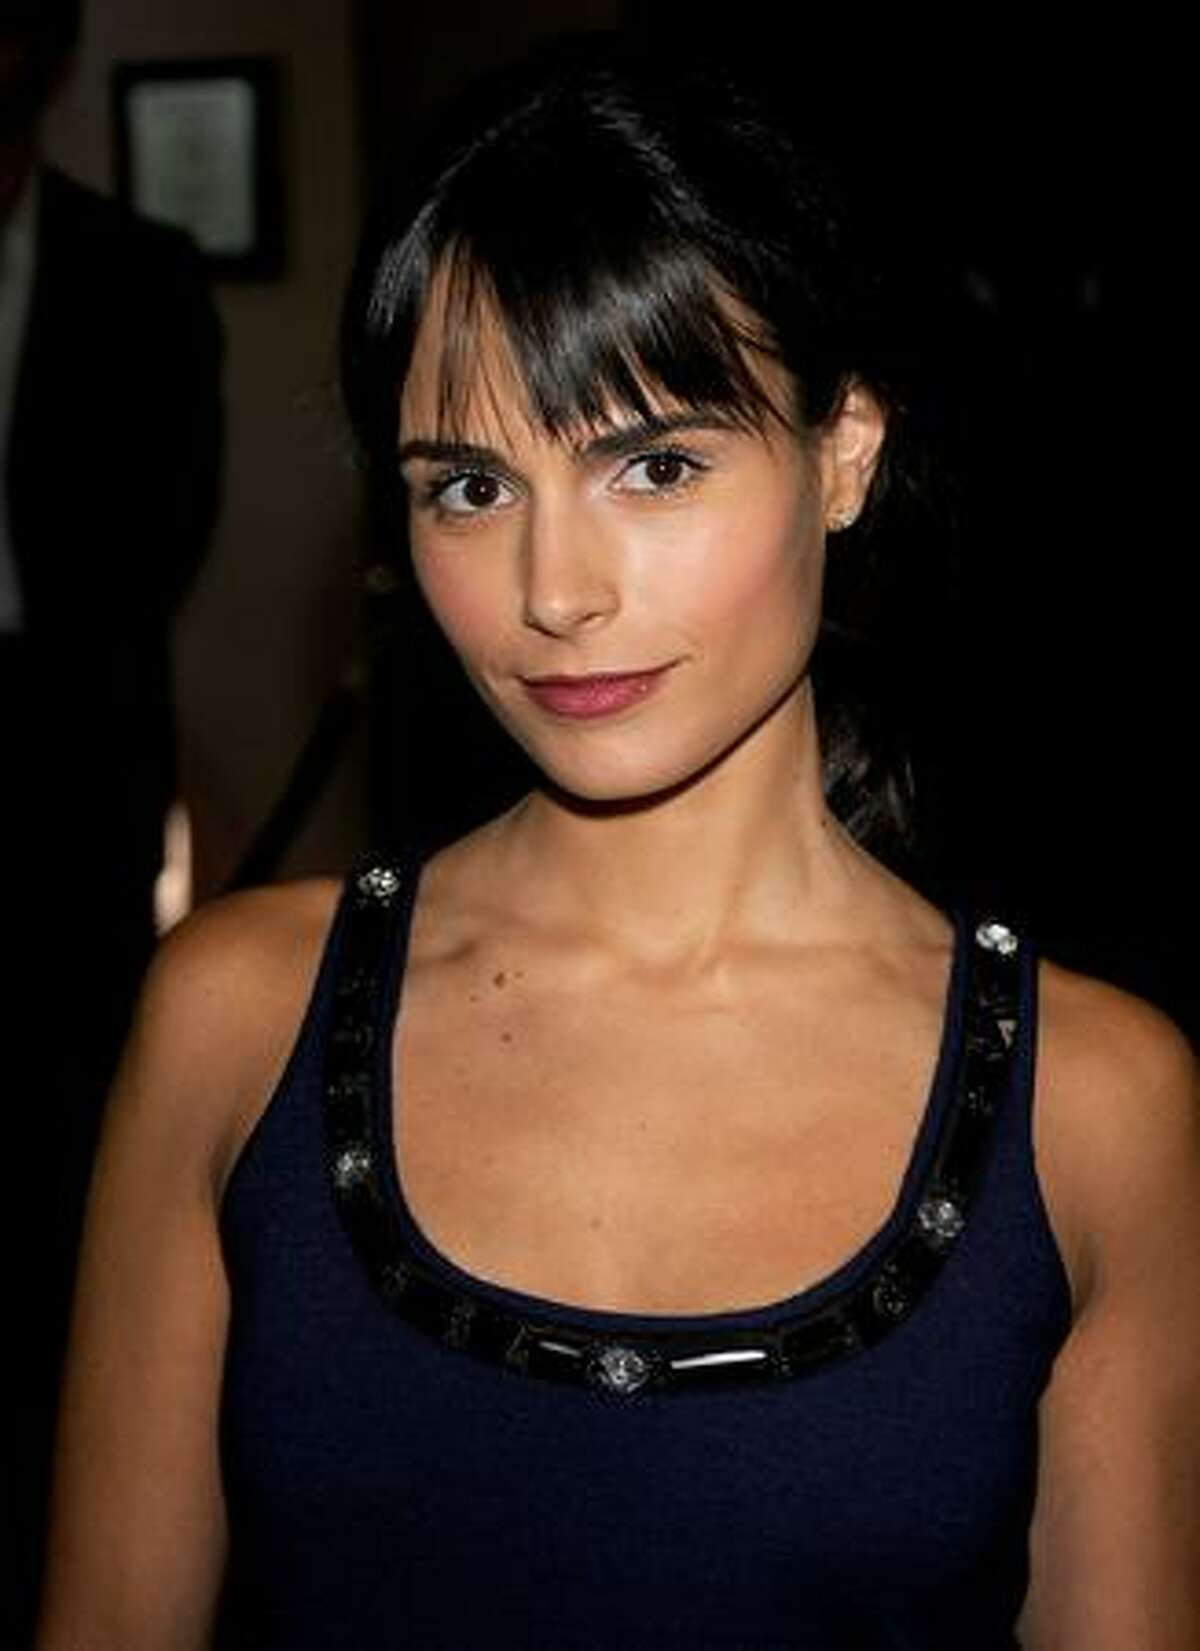 Actress Jordana Brewster arrives at the Hollywood Foreign Press Association's installation luncheon held at the Beverly Hills Hotel in Beverly Hills, California.